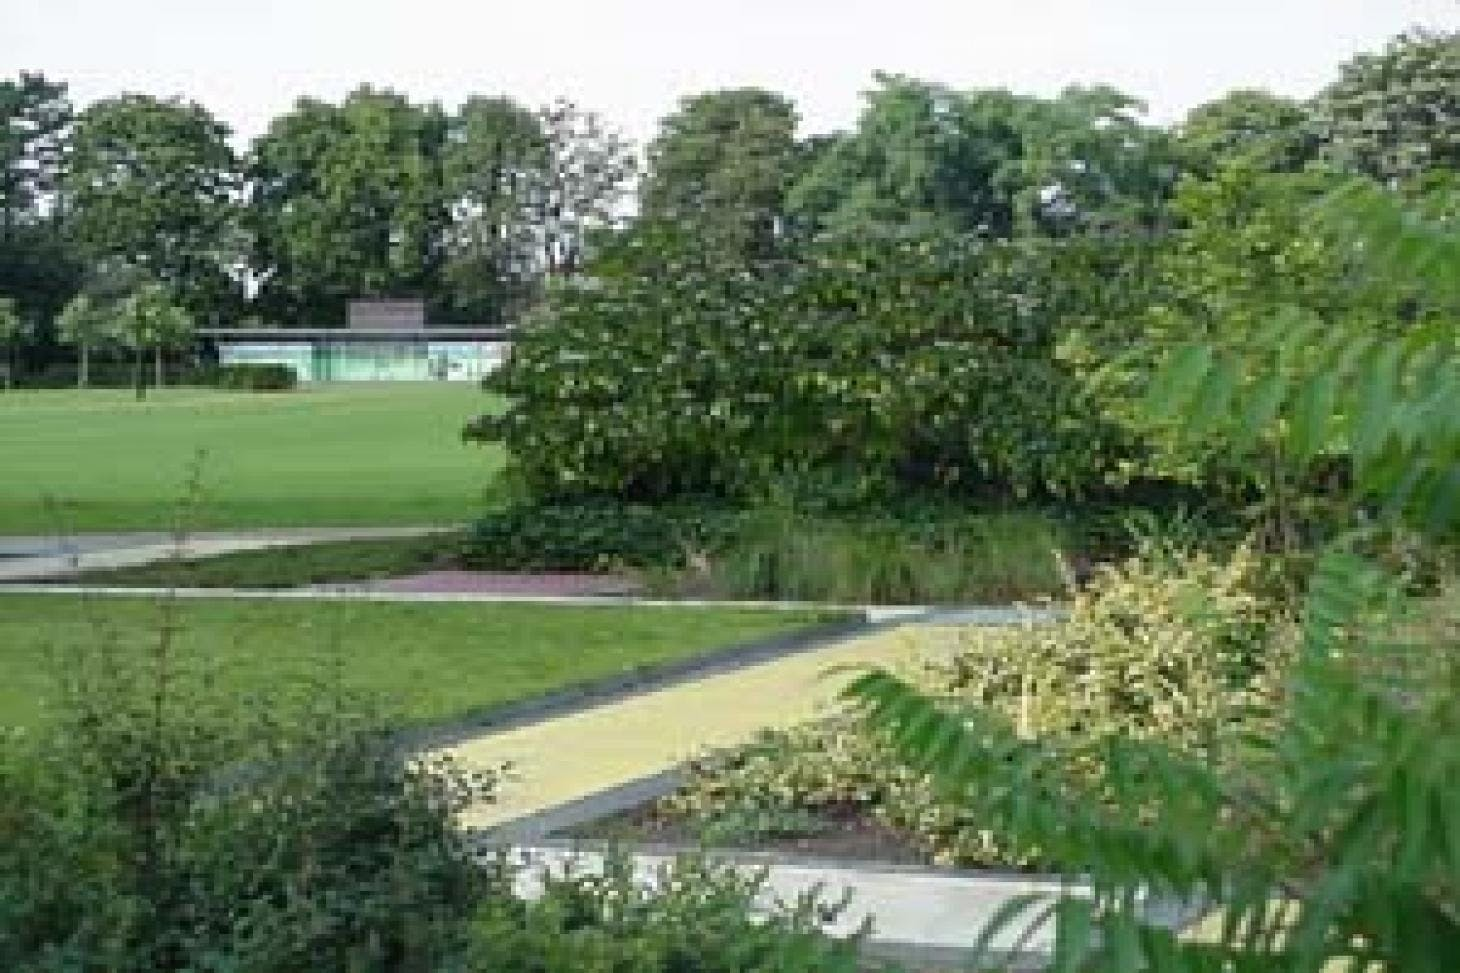 Russell Park Outdoor | Hard (macadam) tennis court